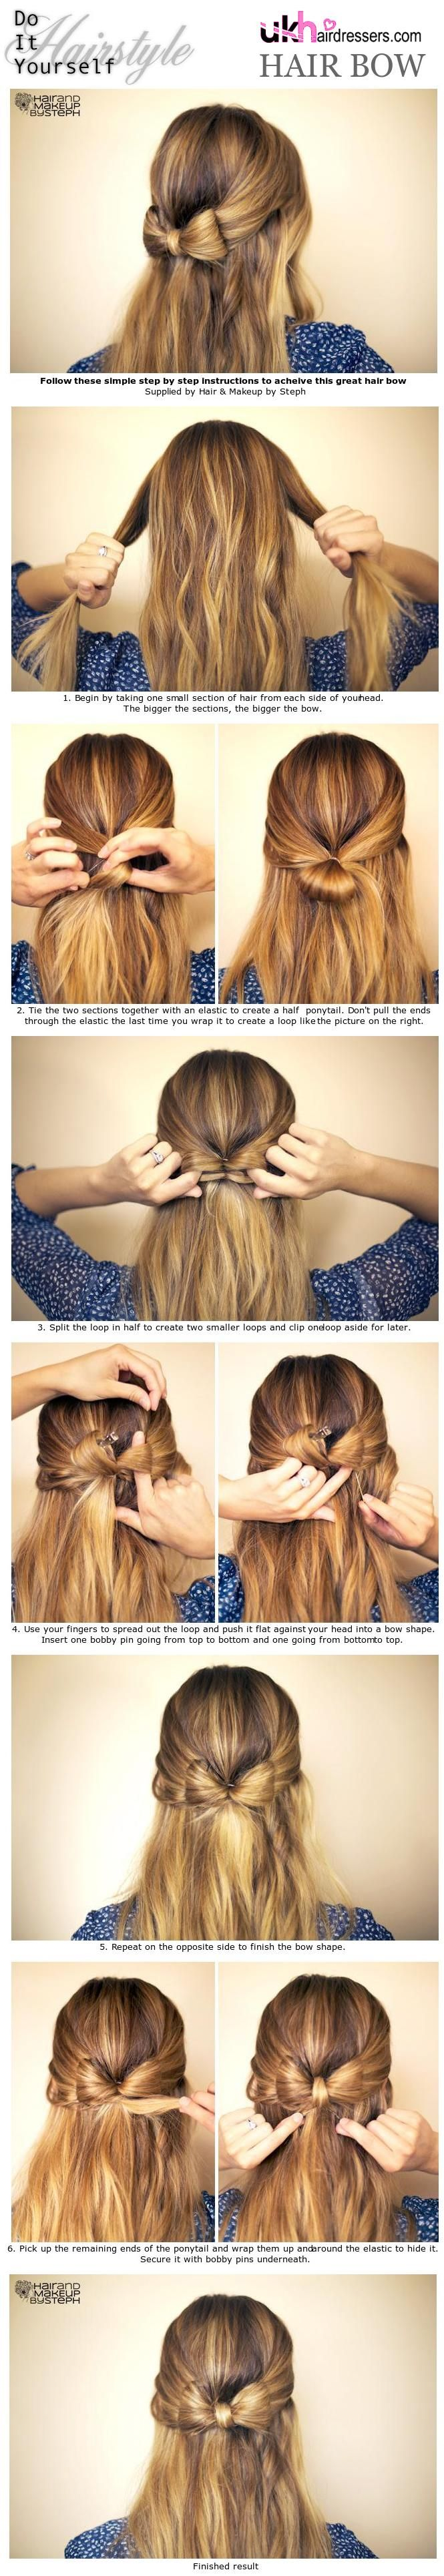 Hair bow hairstyle tutorial